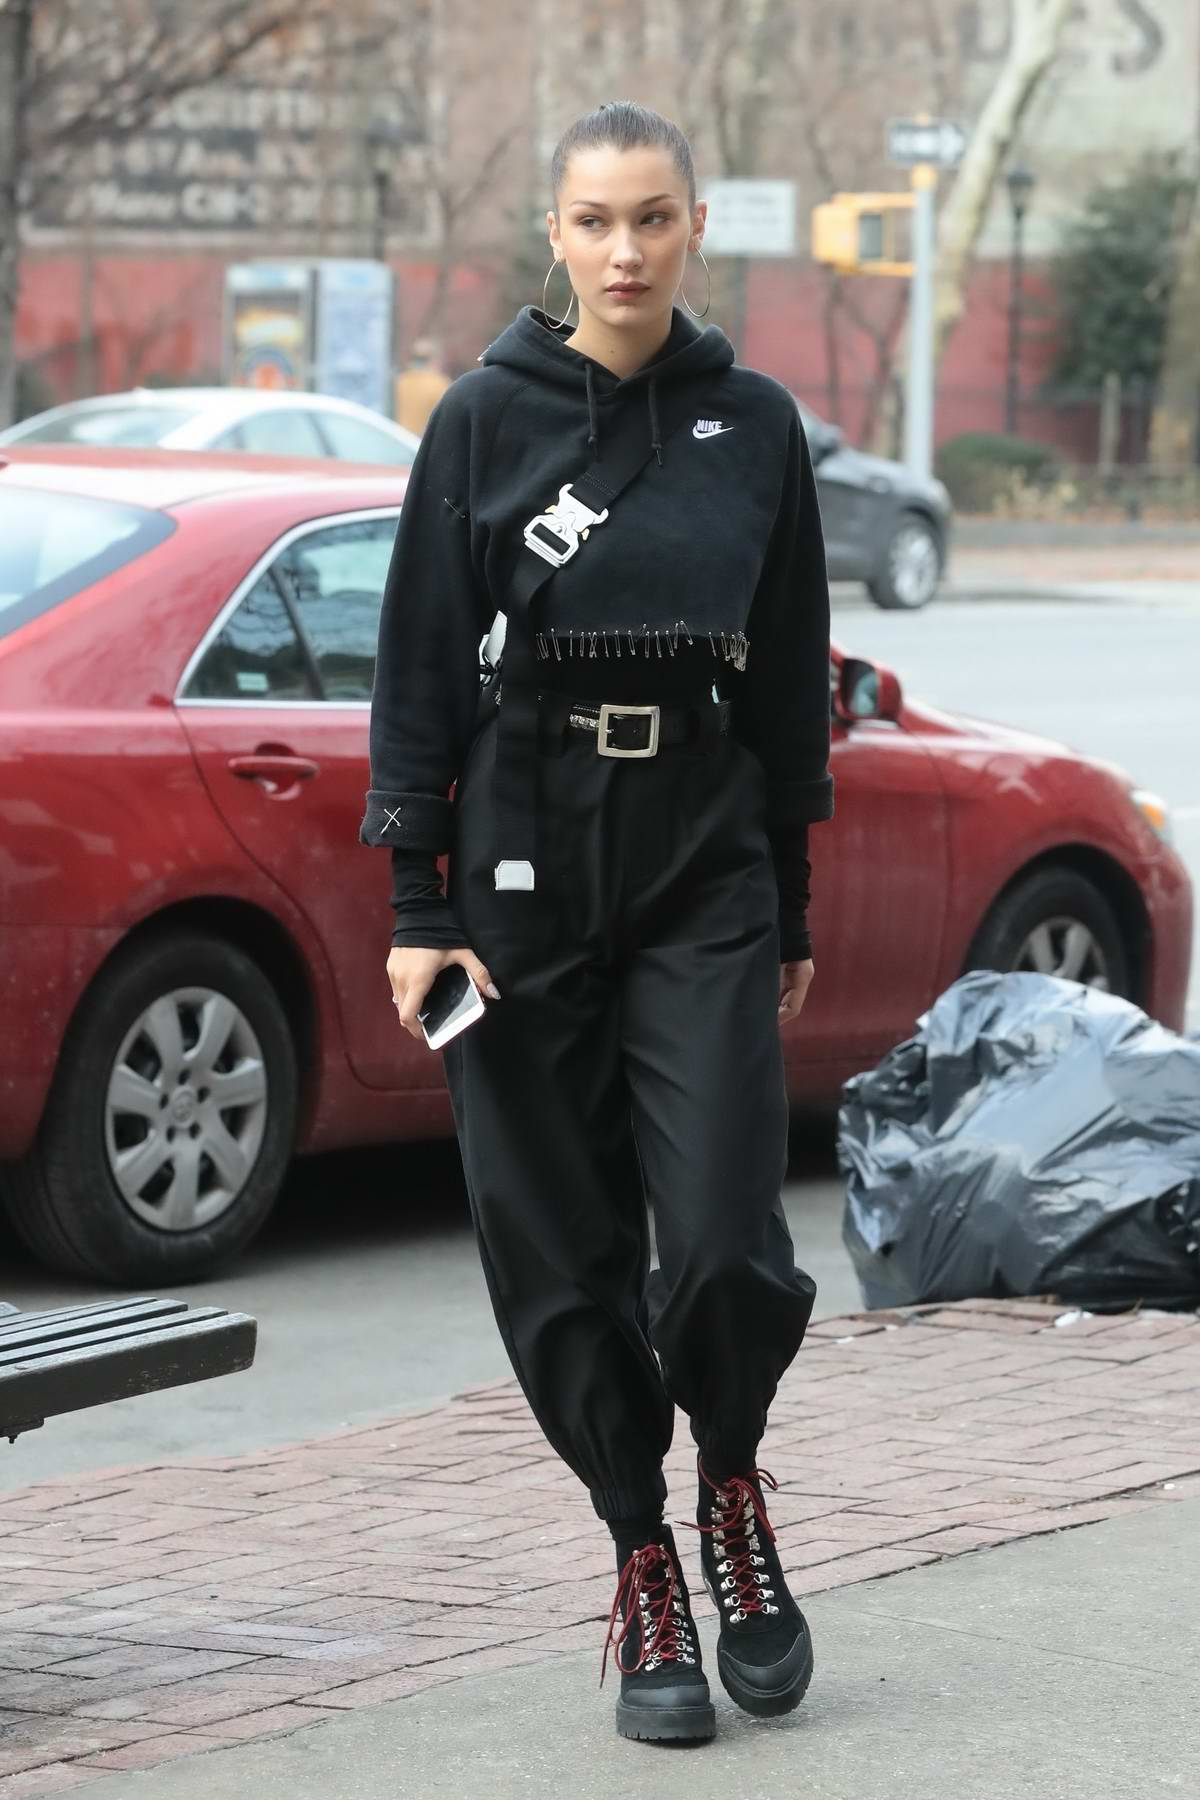 Bella Hadid rocks an all black Nike ninja outfit as she heads to Bar Pitti with friends in New York